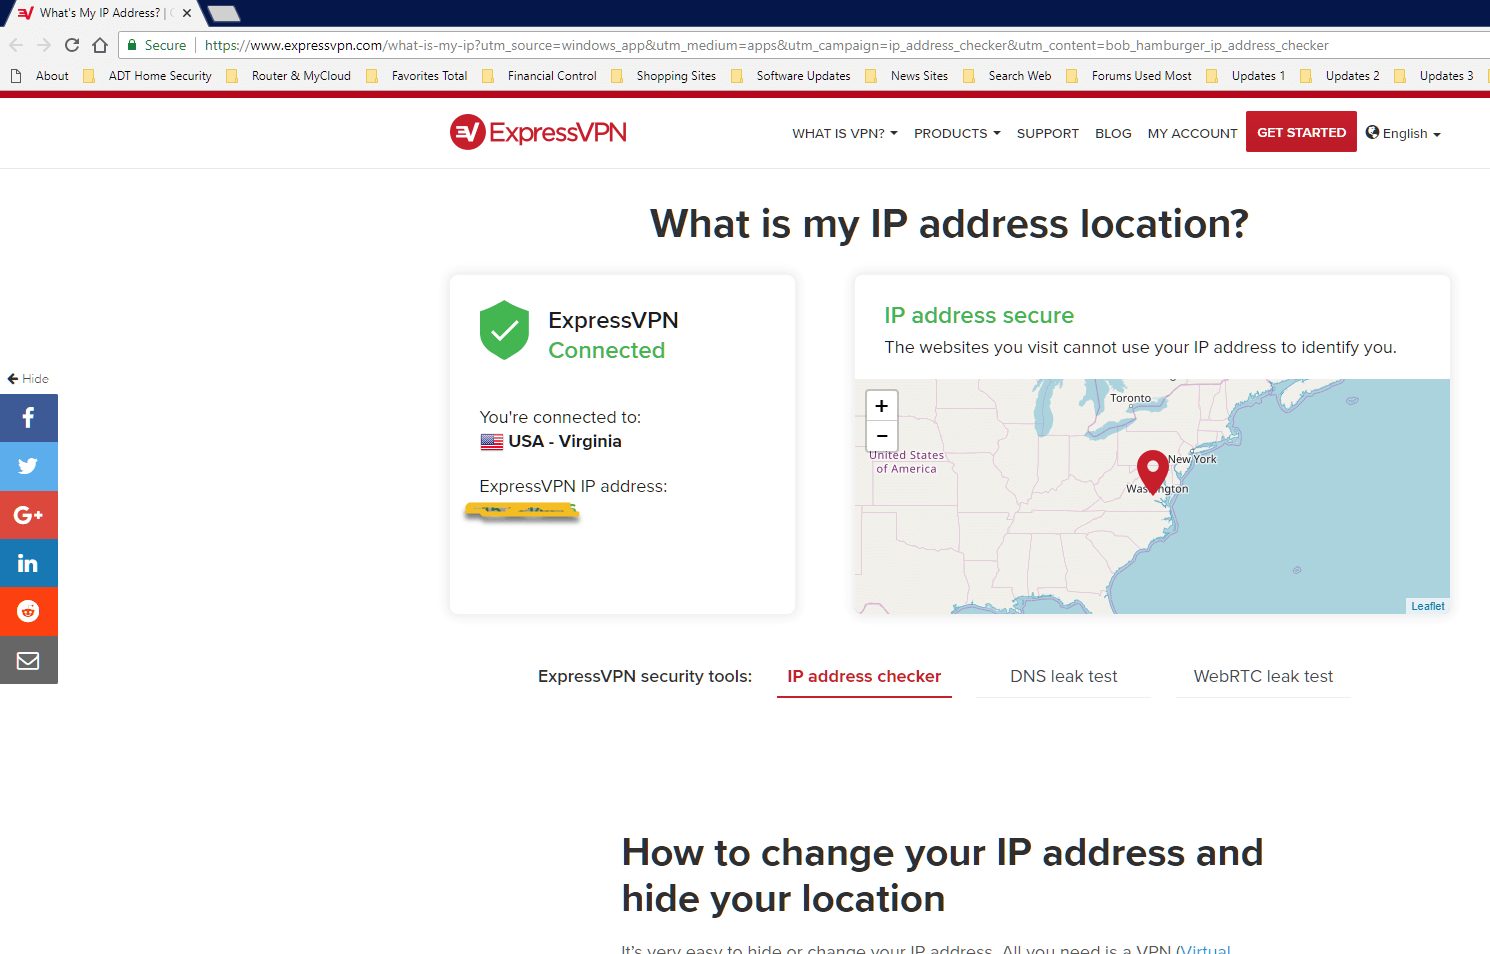 change IP address with ExpressVPN